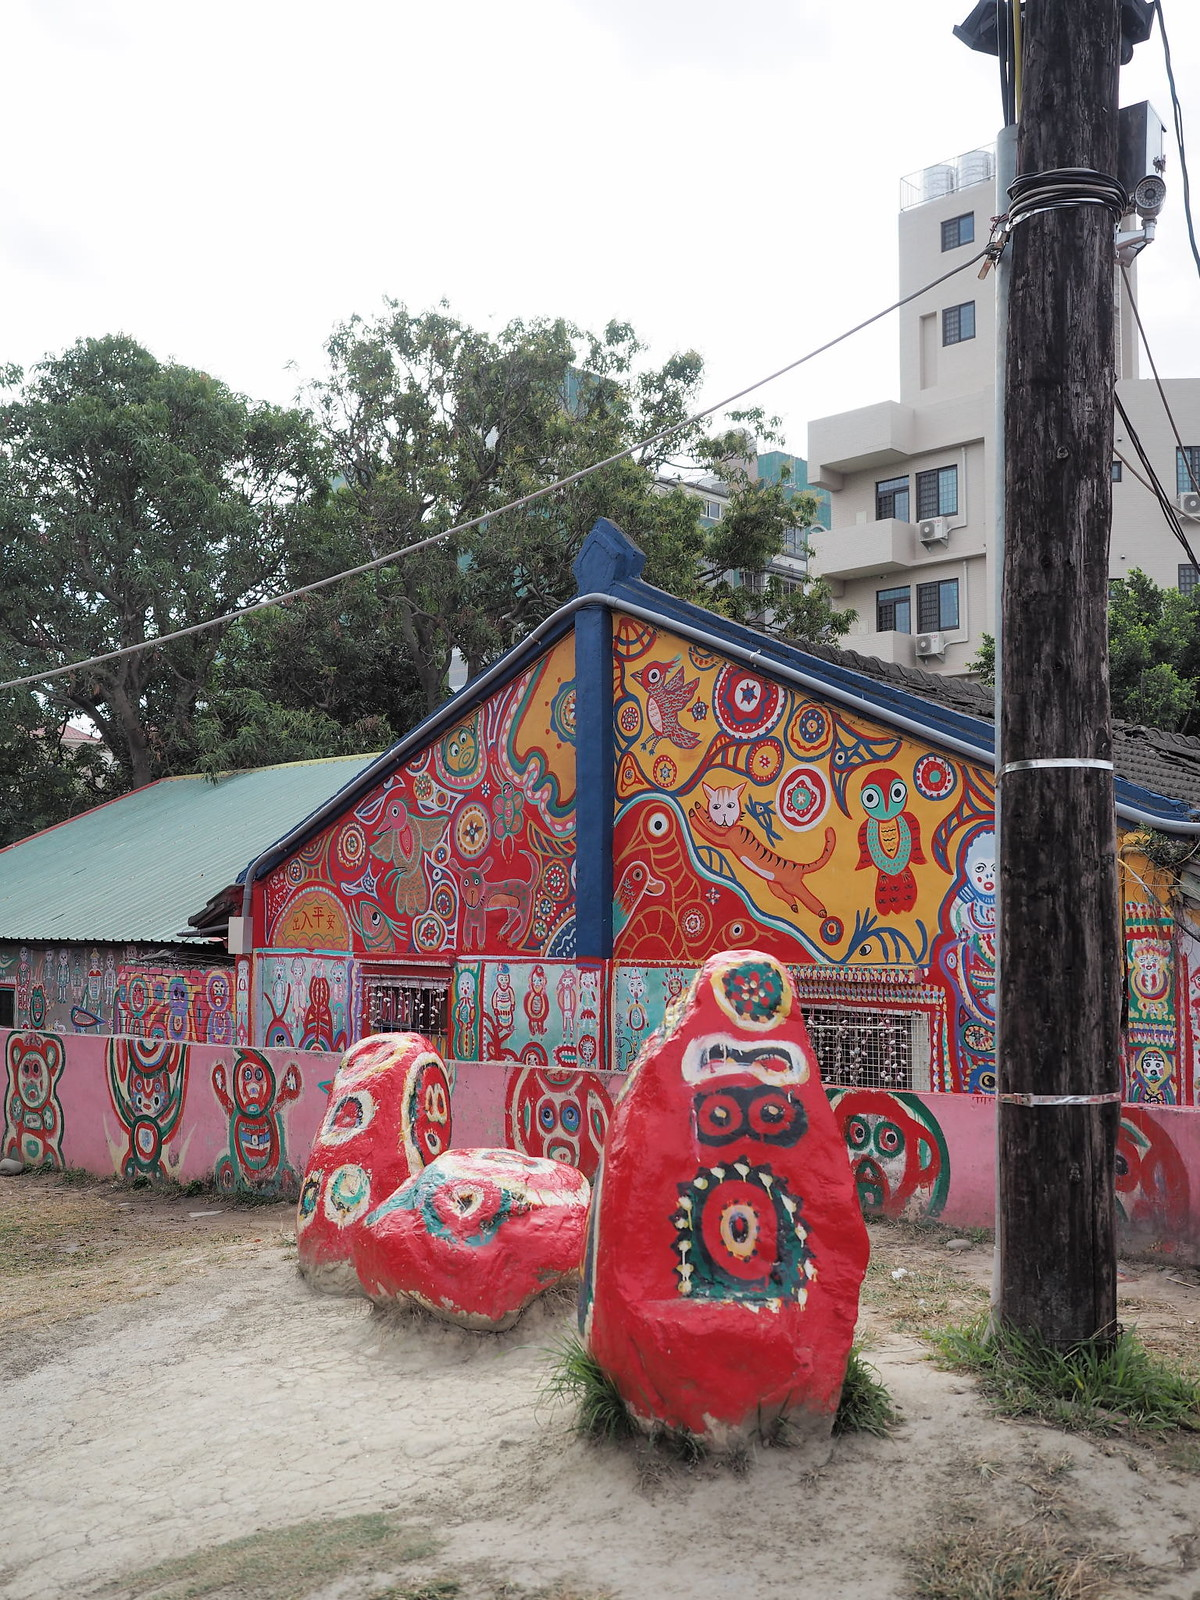 Painted stones and houses at Rainbow Village (彩虹眷村)